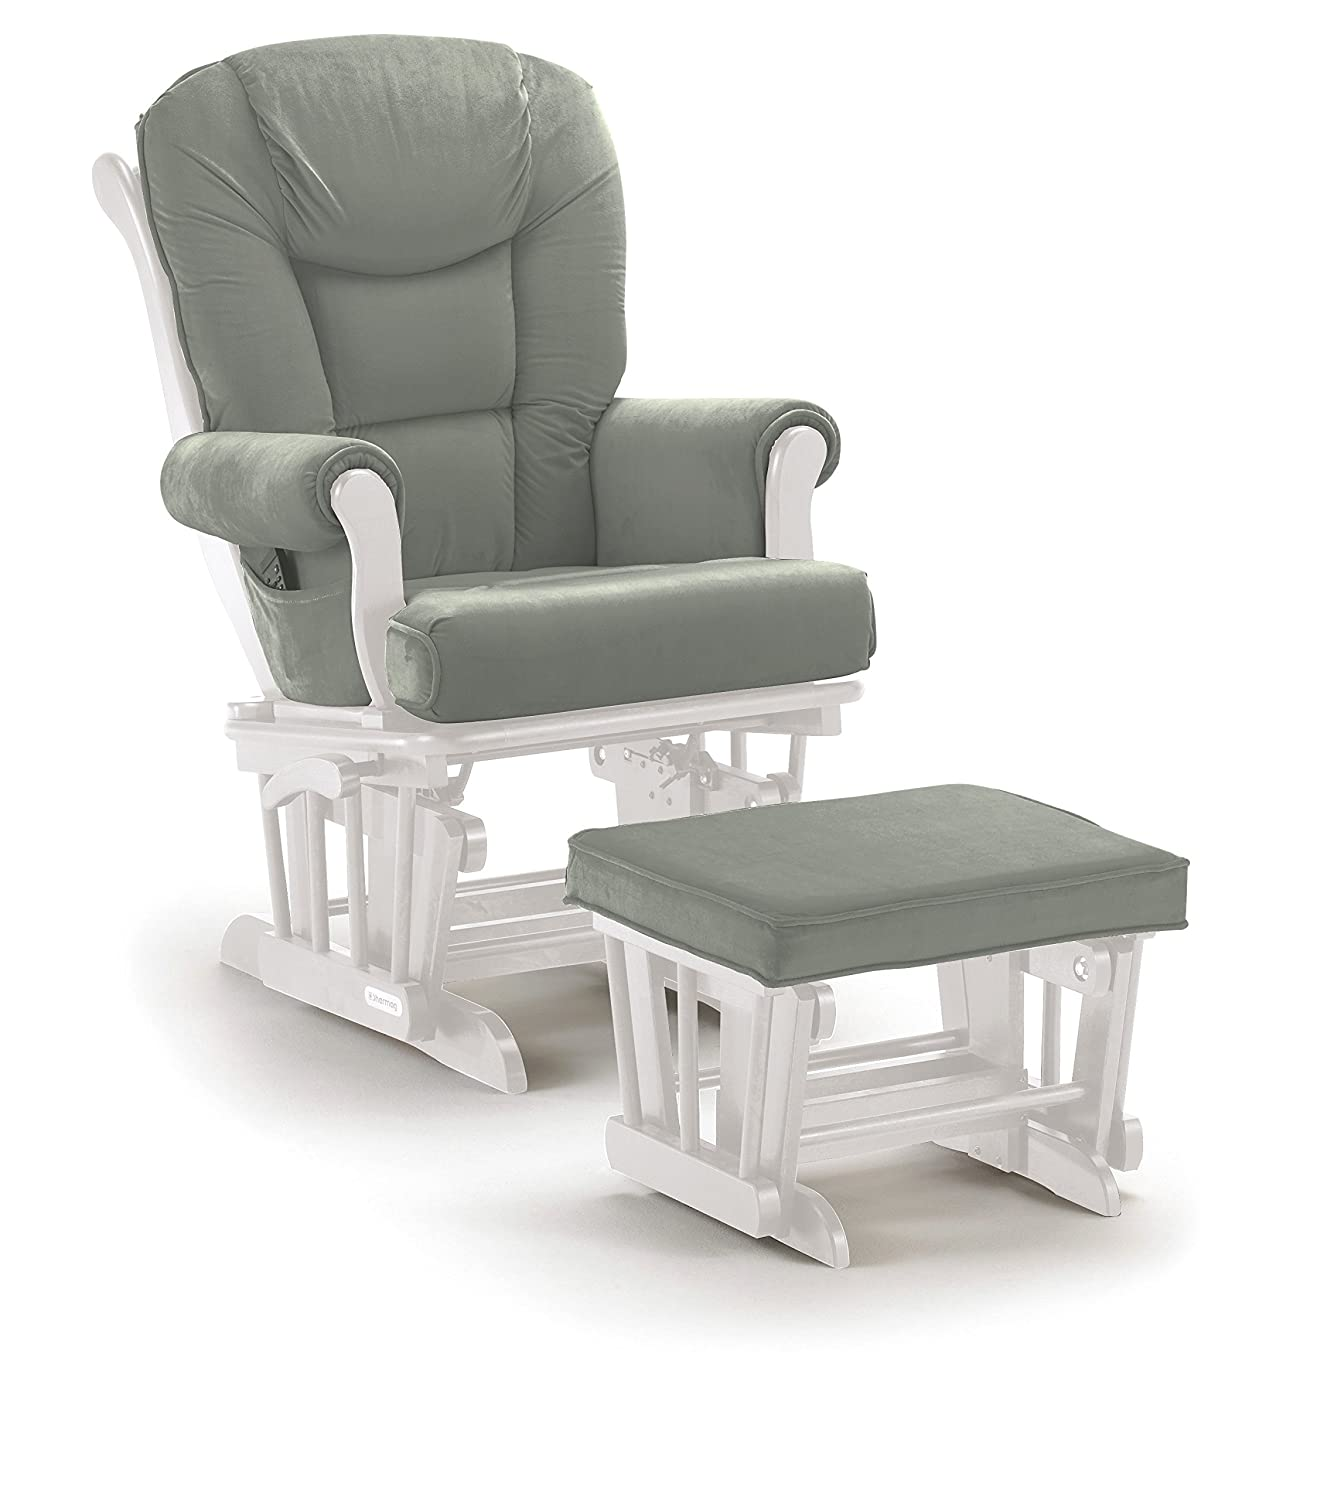 Baby glider chair - Shermag Glider Rocker Combo White With Grey